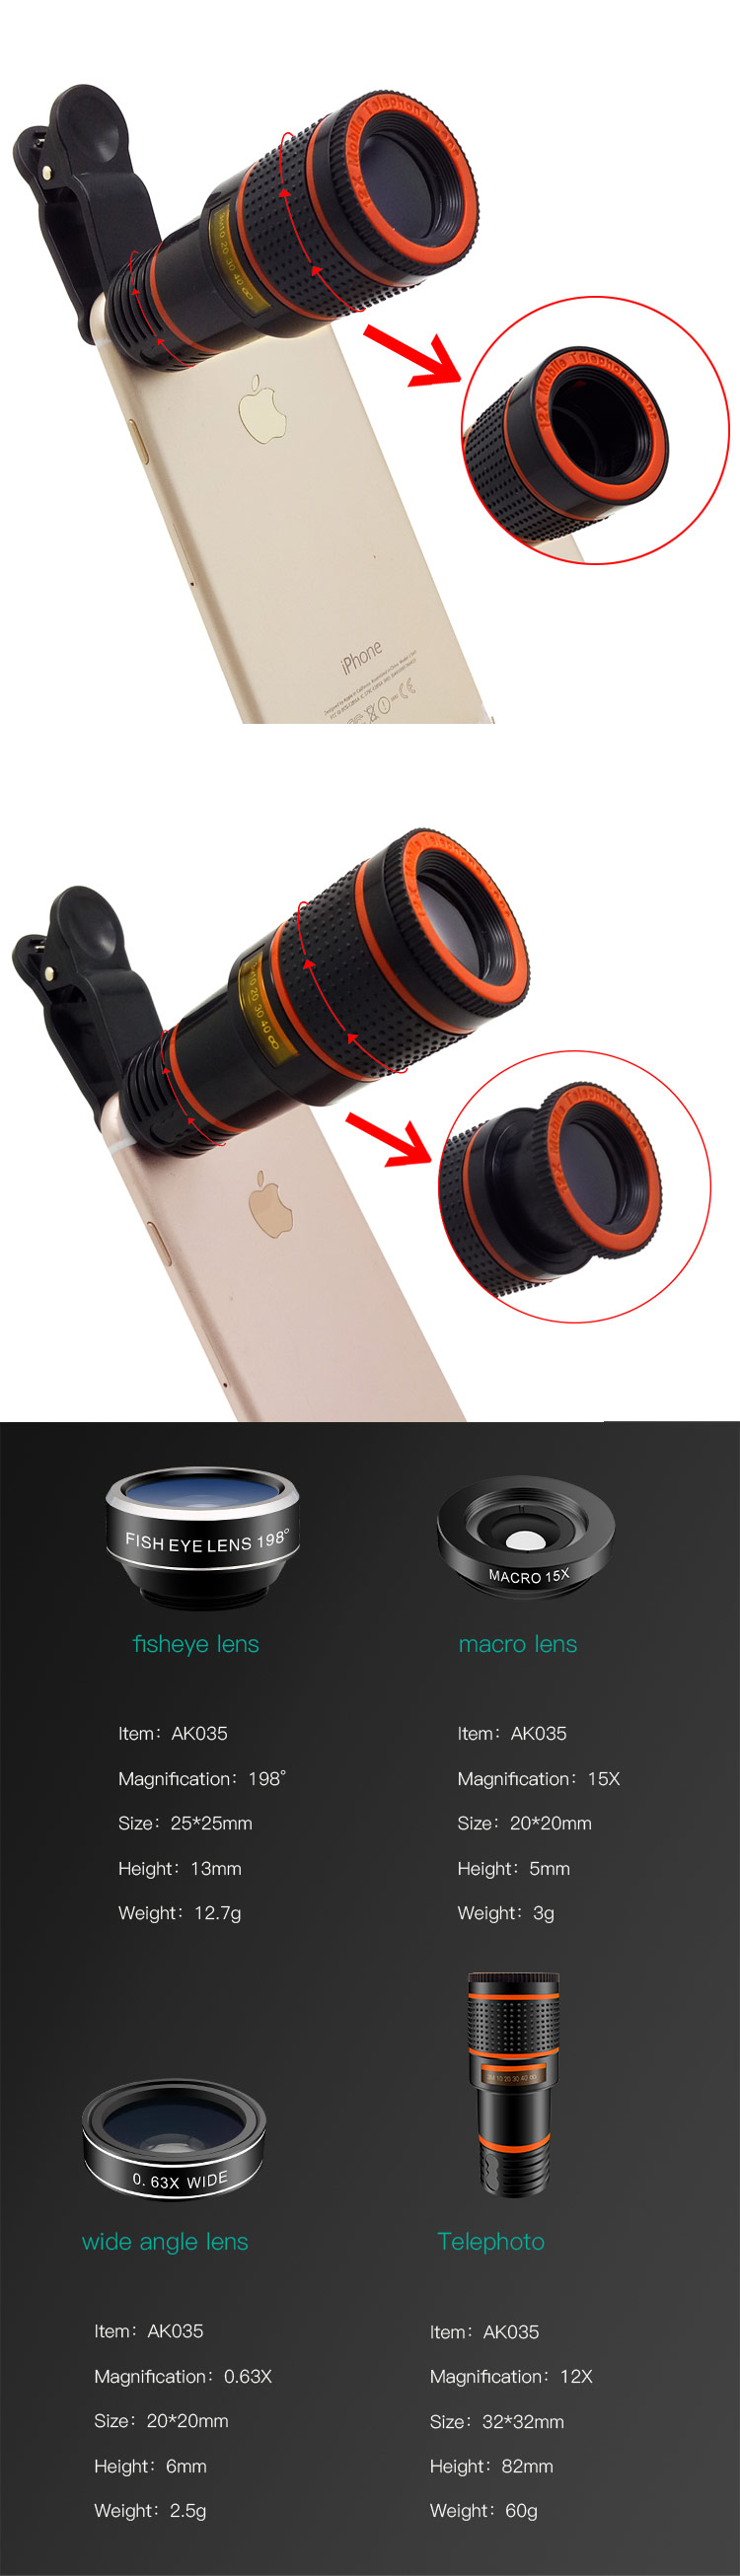 2018 New idea cell phone lens 4 in 1 12x telephoto 198 degree 0.63x wide angle 15x macro zoom camera lens kit